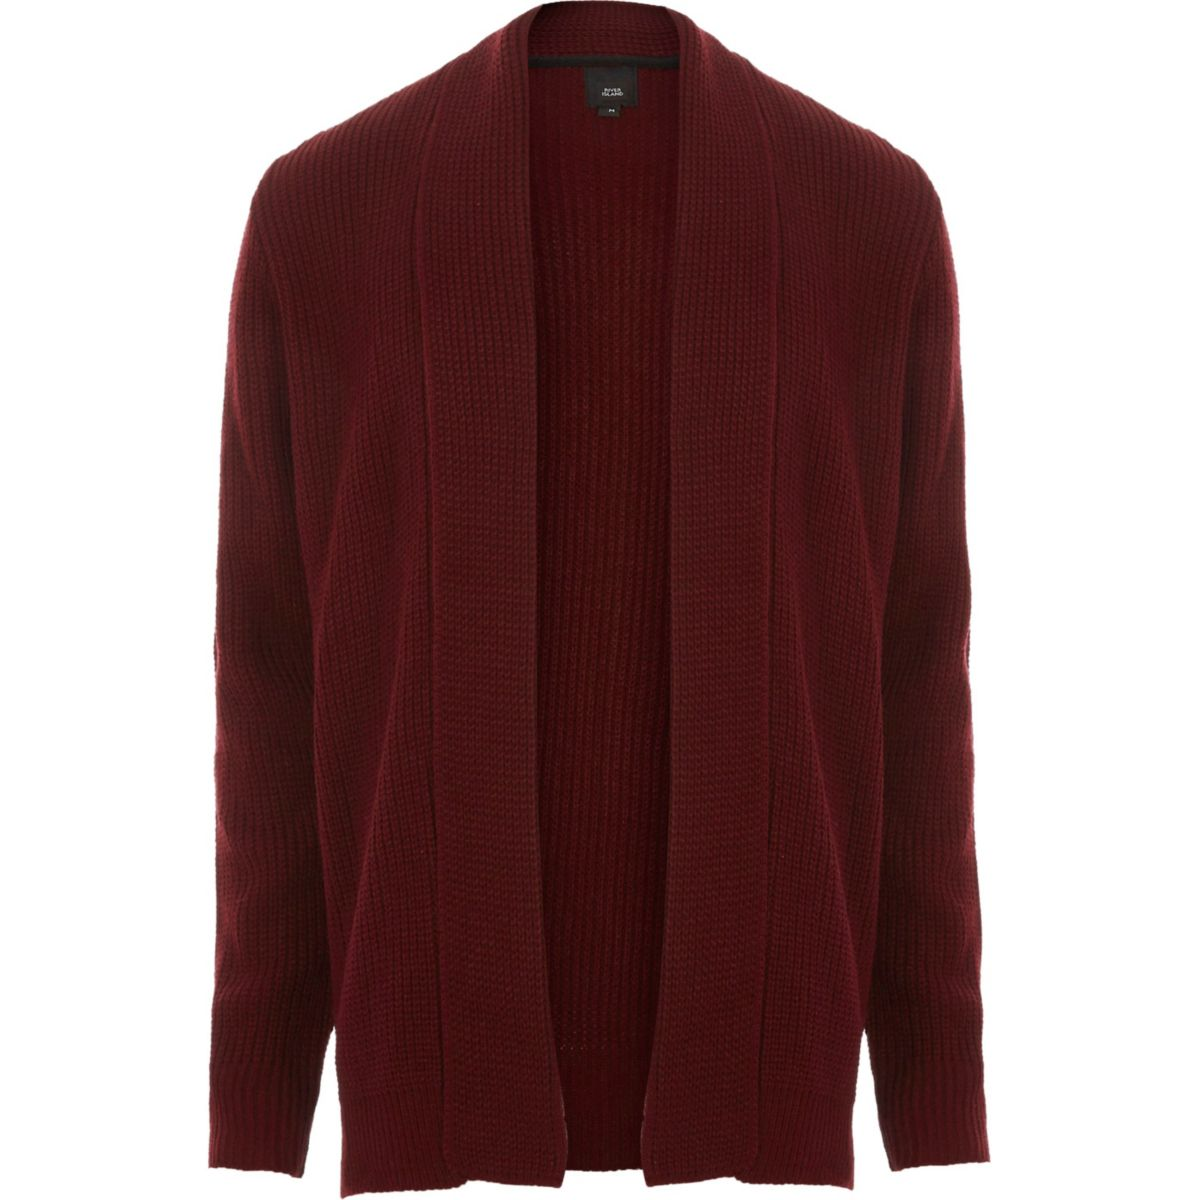 Dark red open front rib knit cardigan